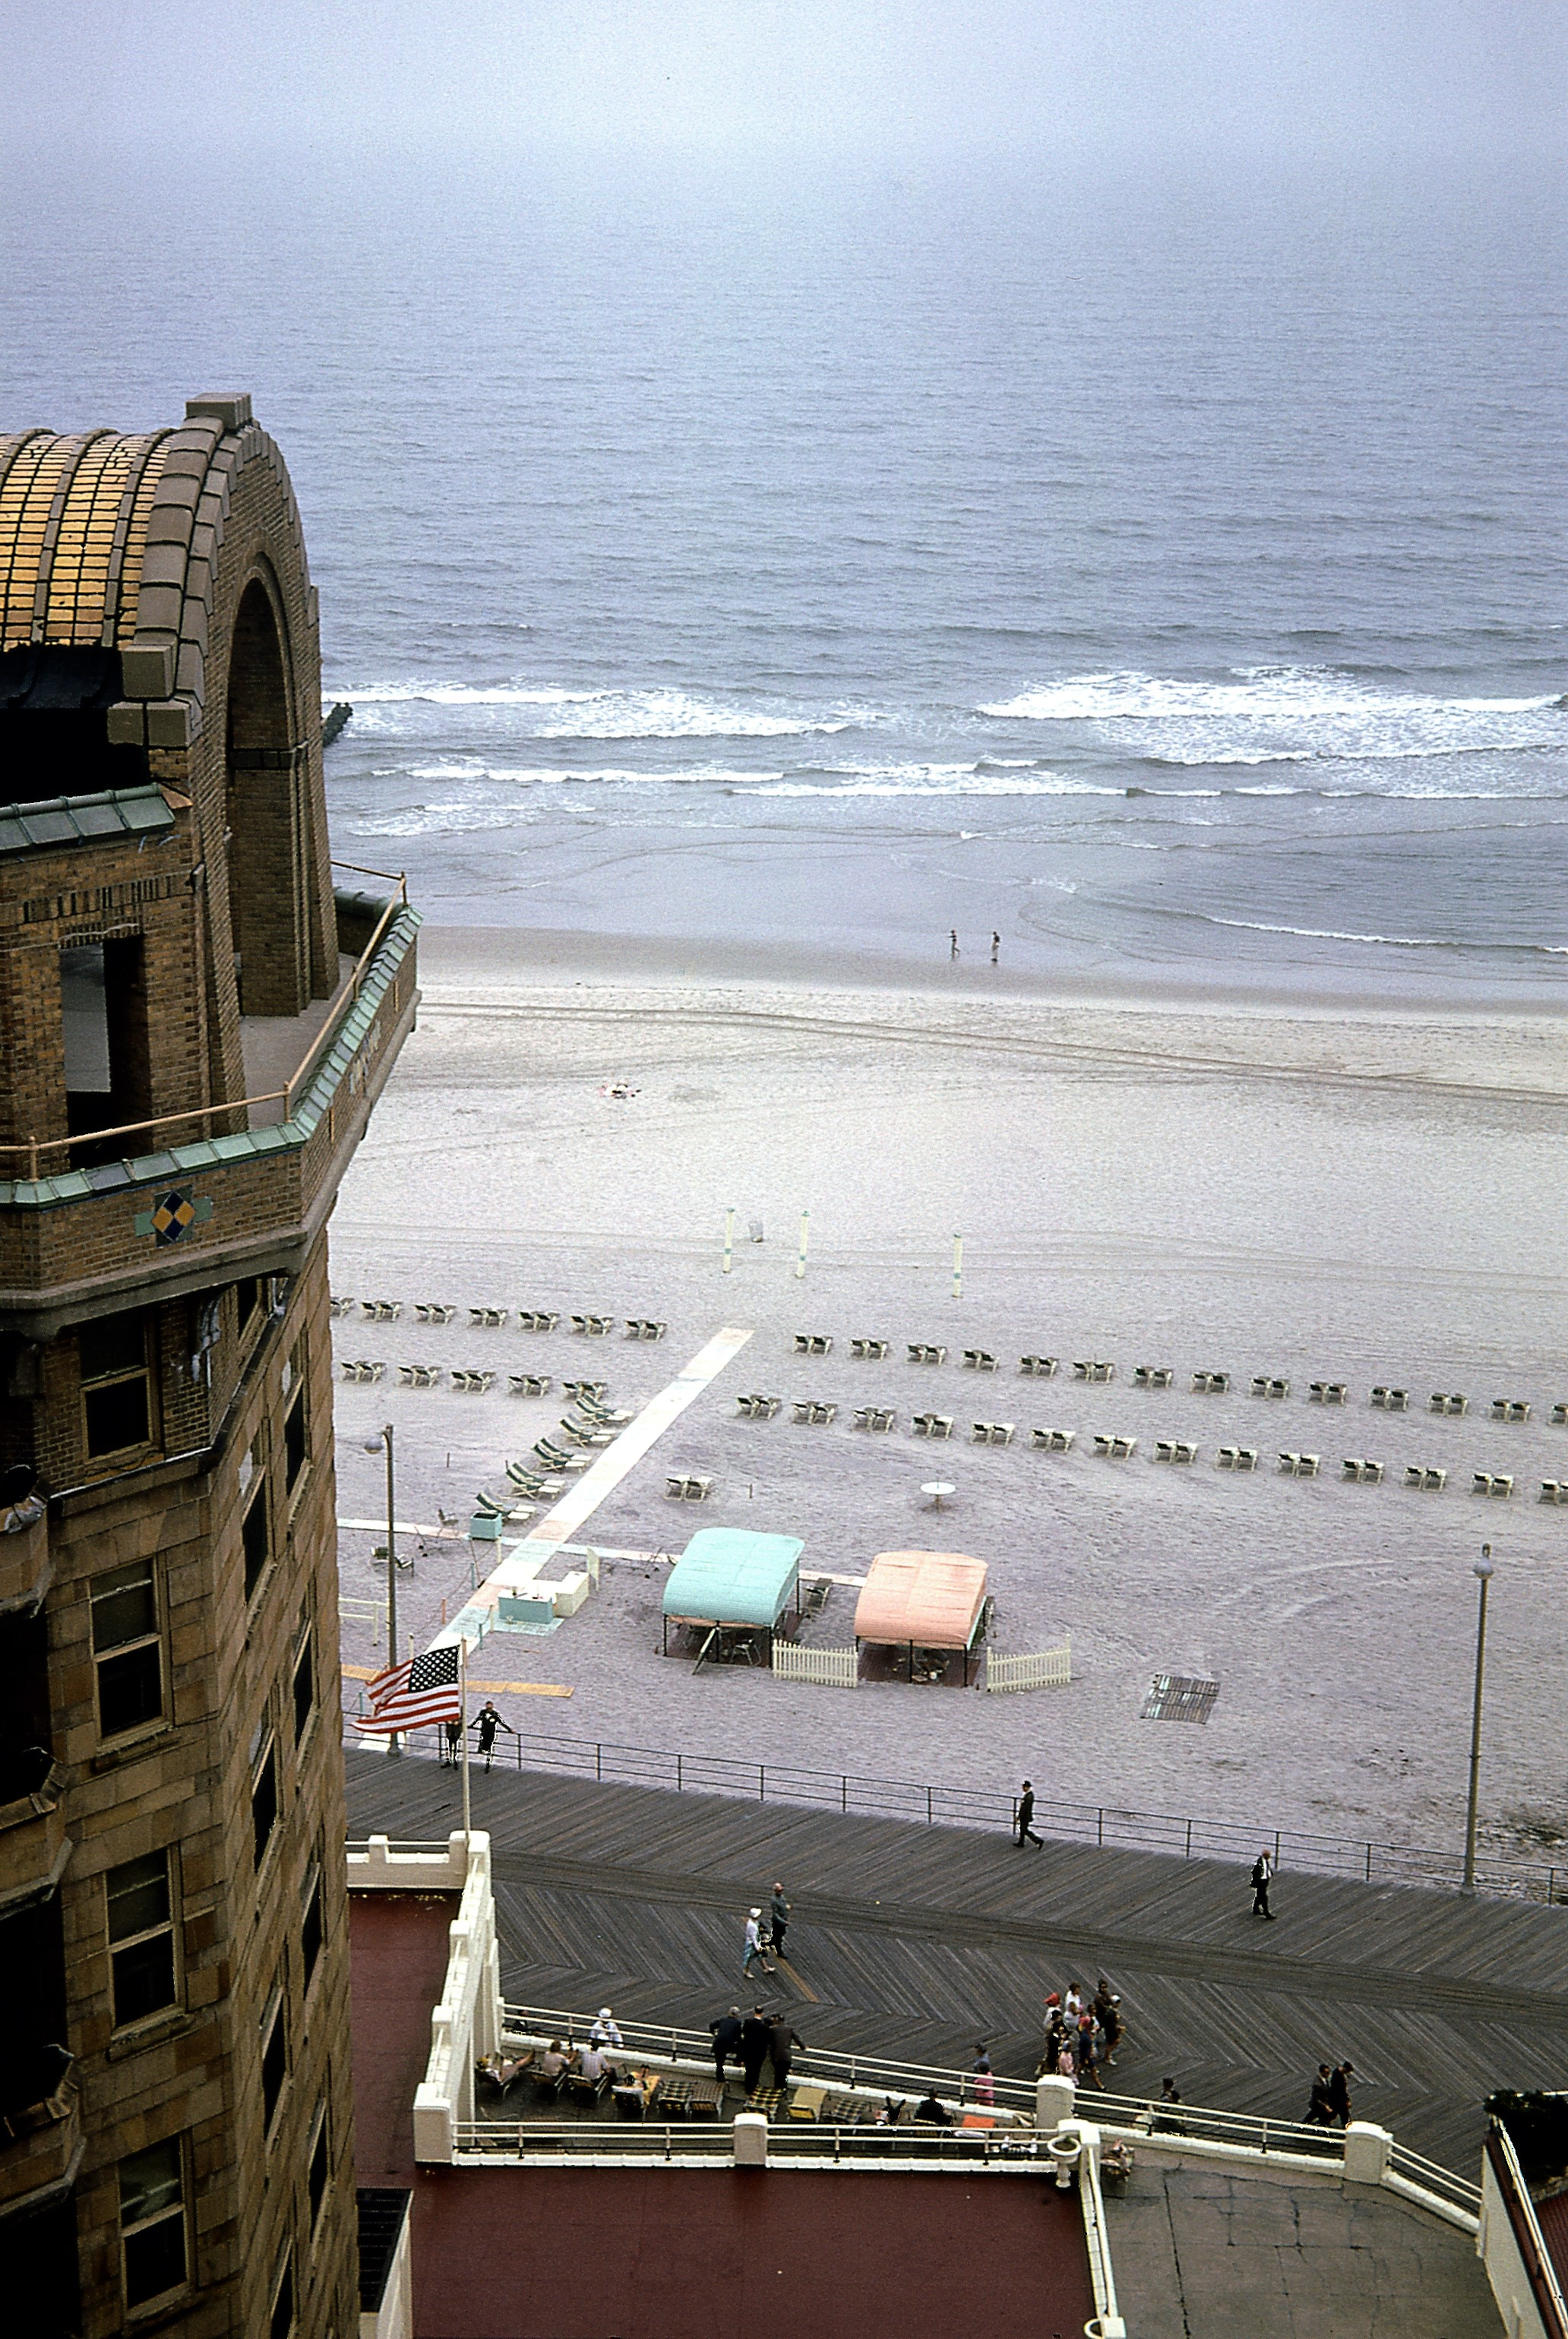 Atlantic City, New Jersey 1962 aerial shot of the beach